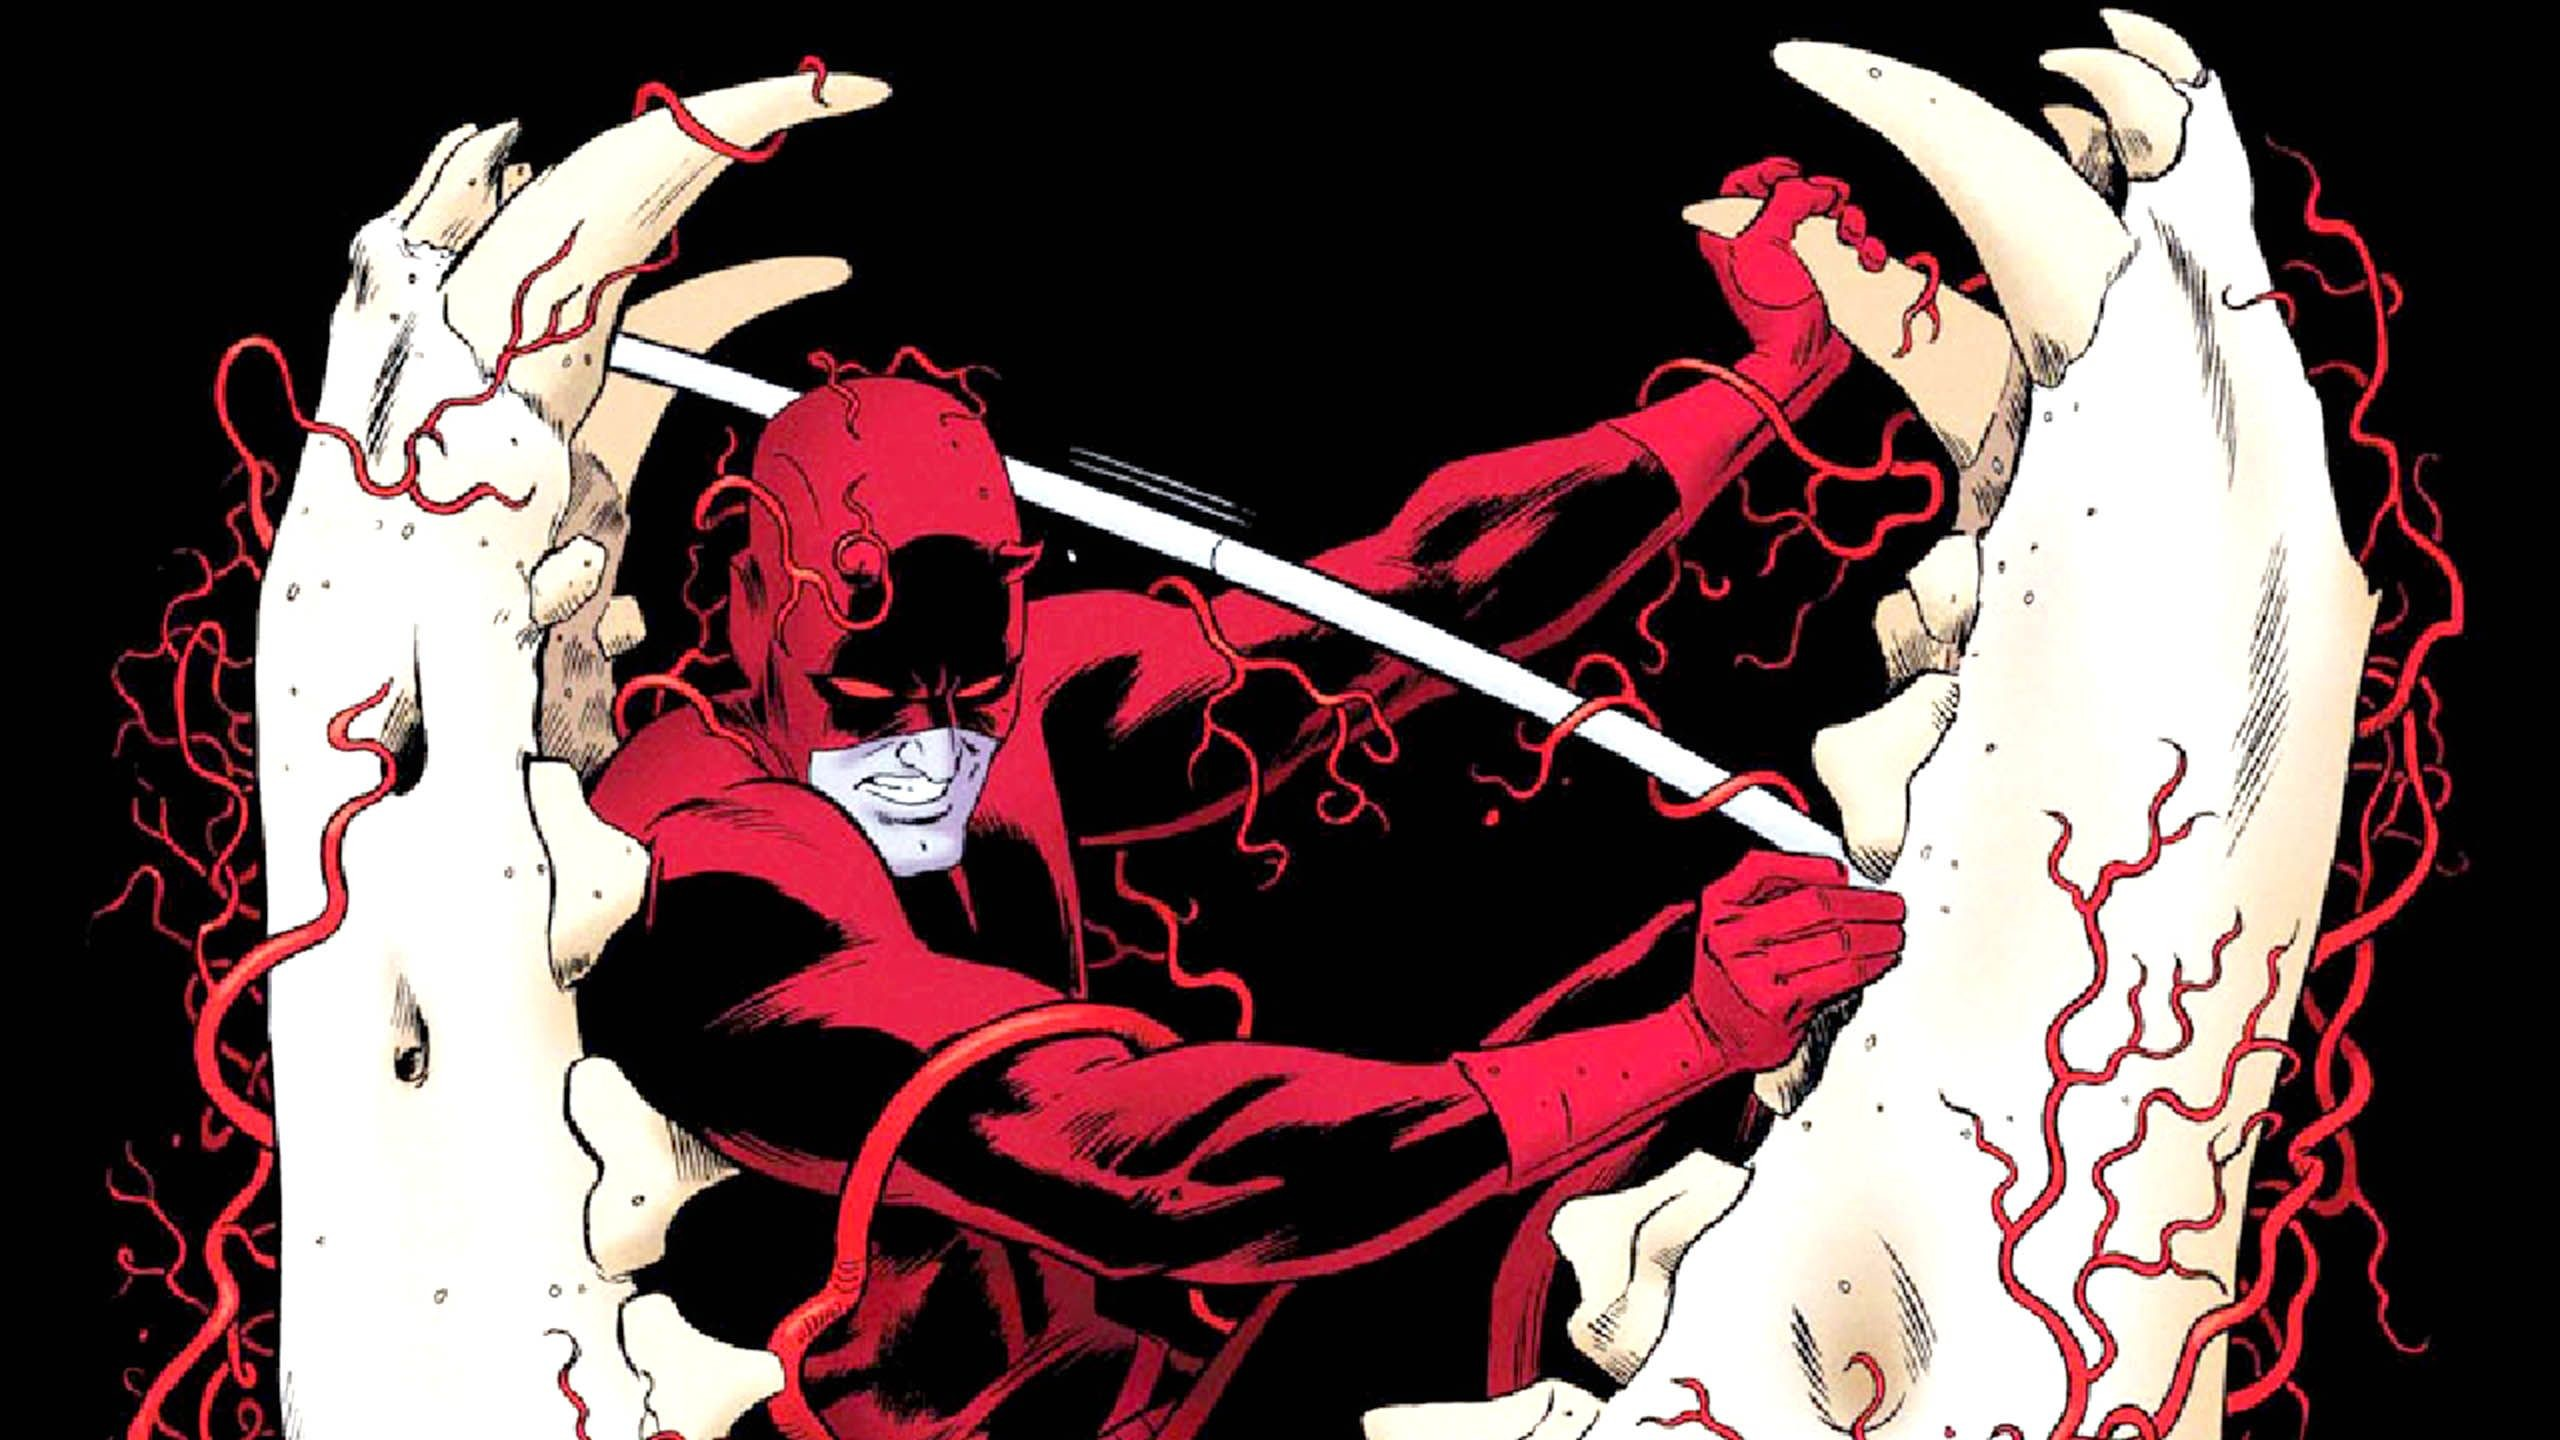 Res: 2560x1440, daredevil vs punisher - http://1080wallpaper.net/daredevil-vs-